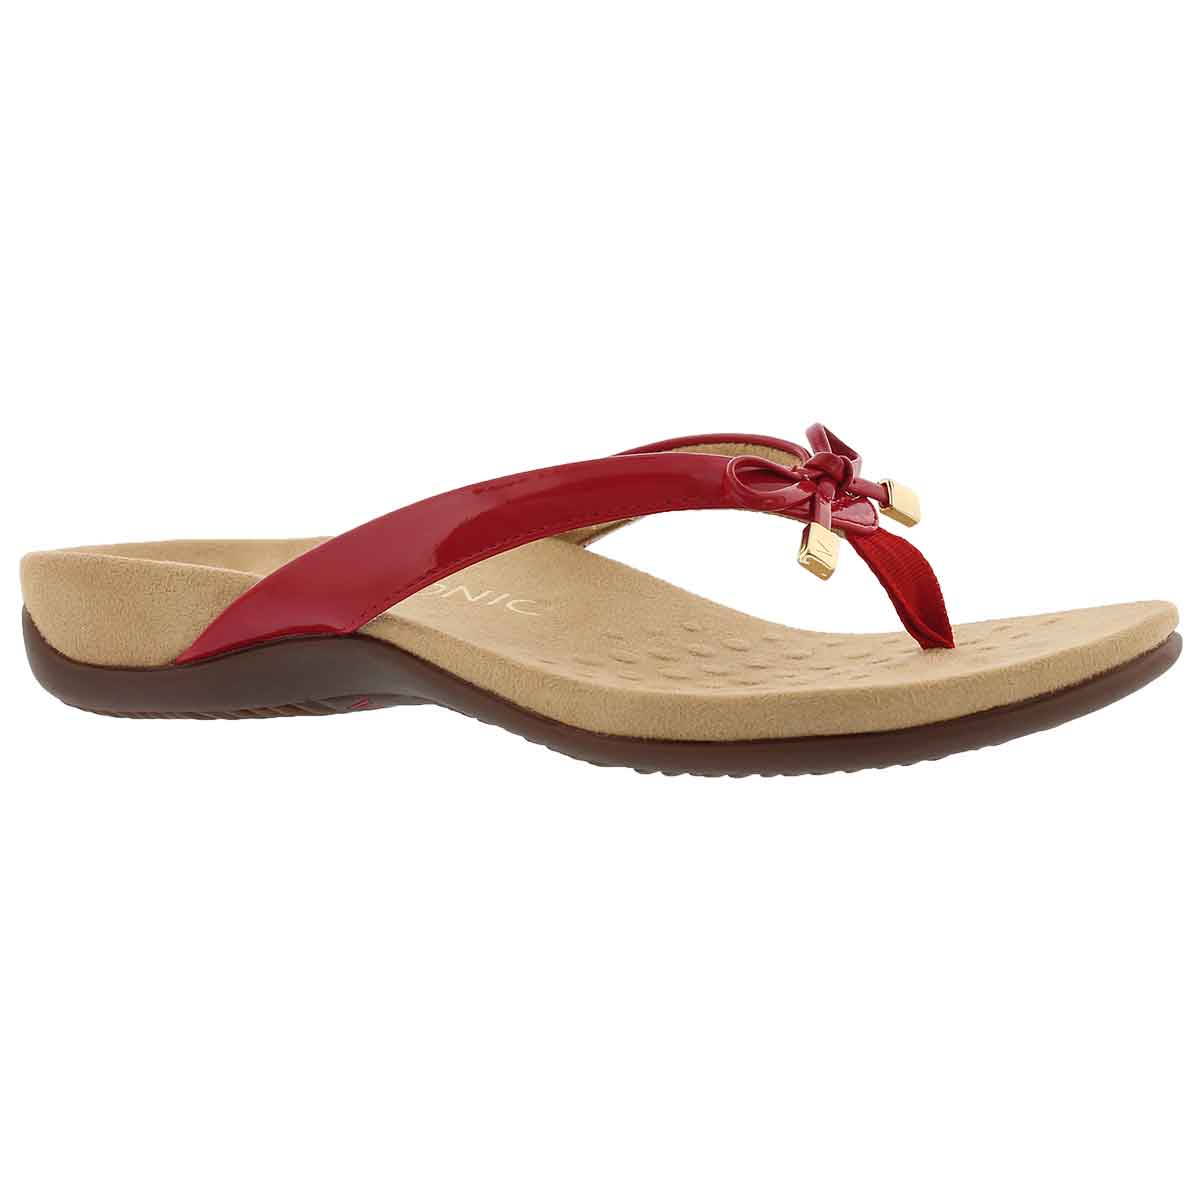 Women's BELLA II red arch supprt thng sandals